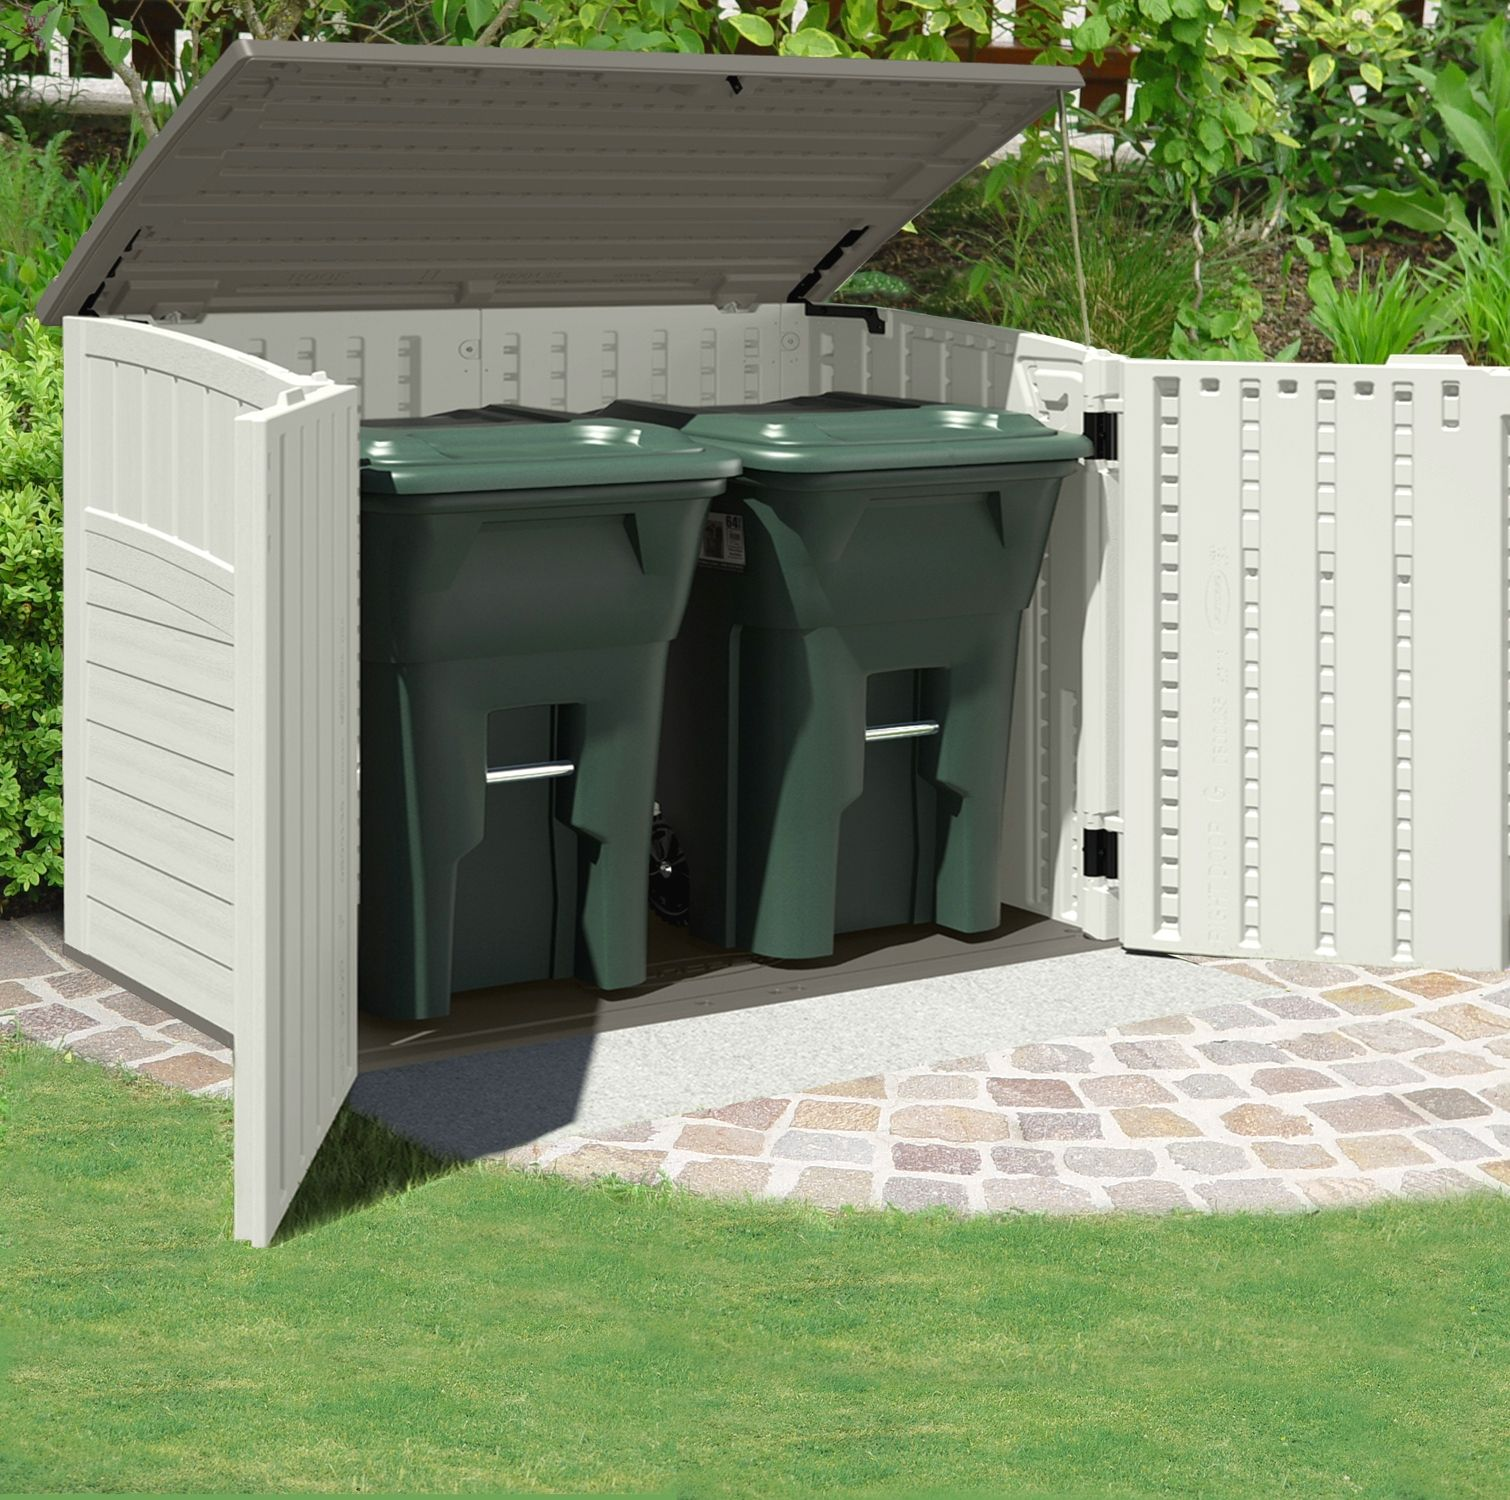 Attrayant Appealing Suncast Storage Shed For Home Outdoor Storage Ideas: Appealing  Kensington Six Horizontal Suncast Storage